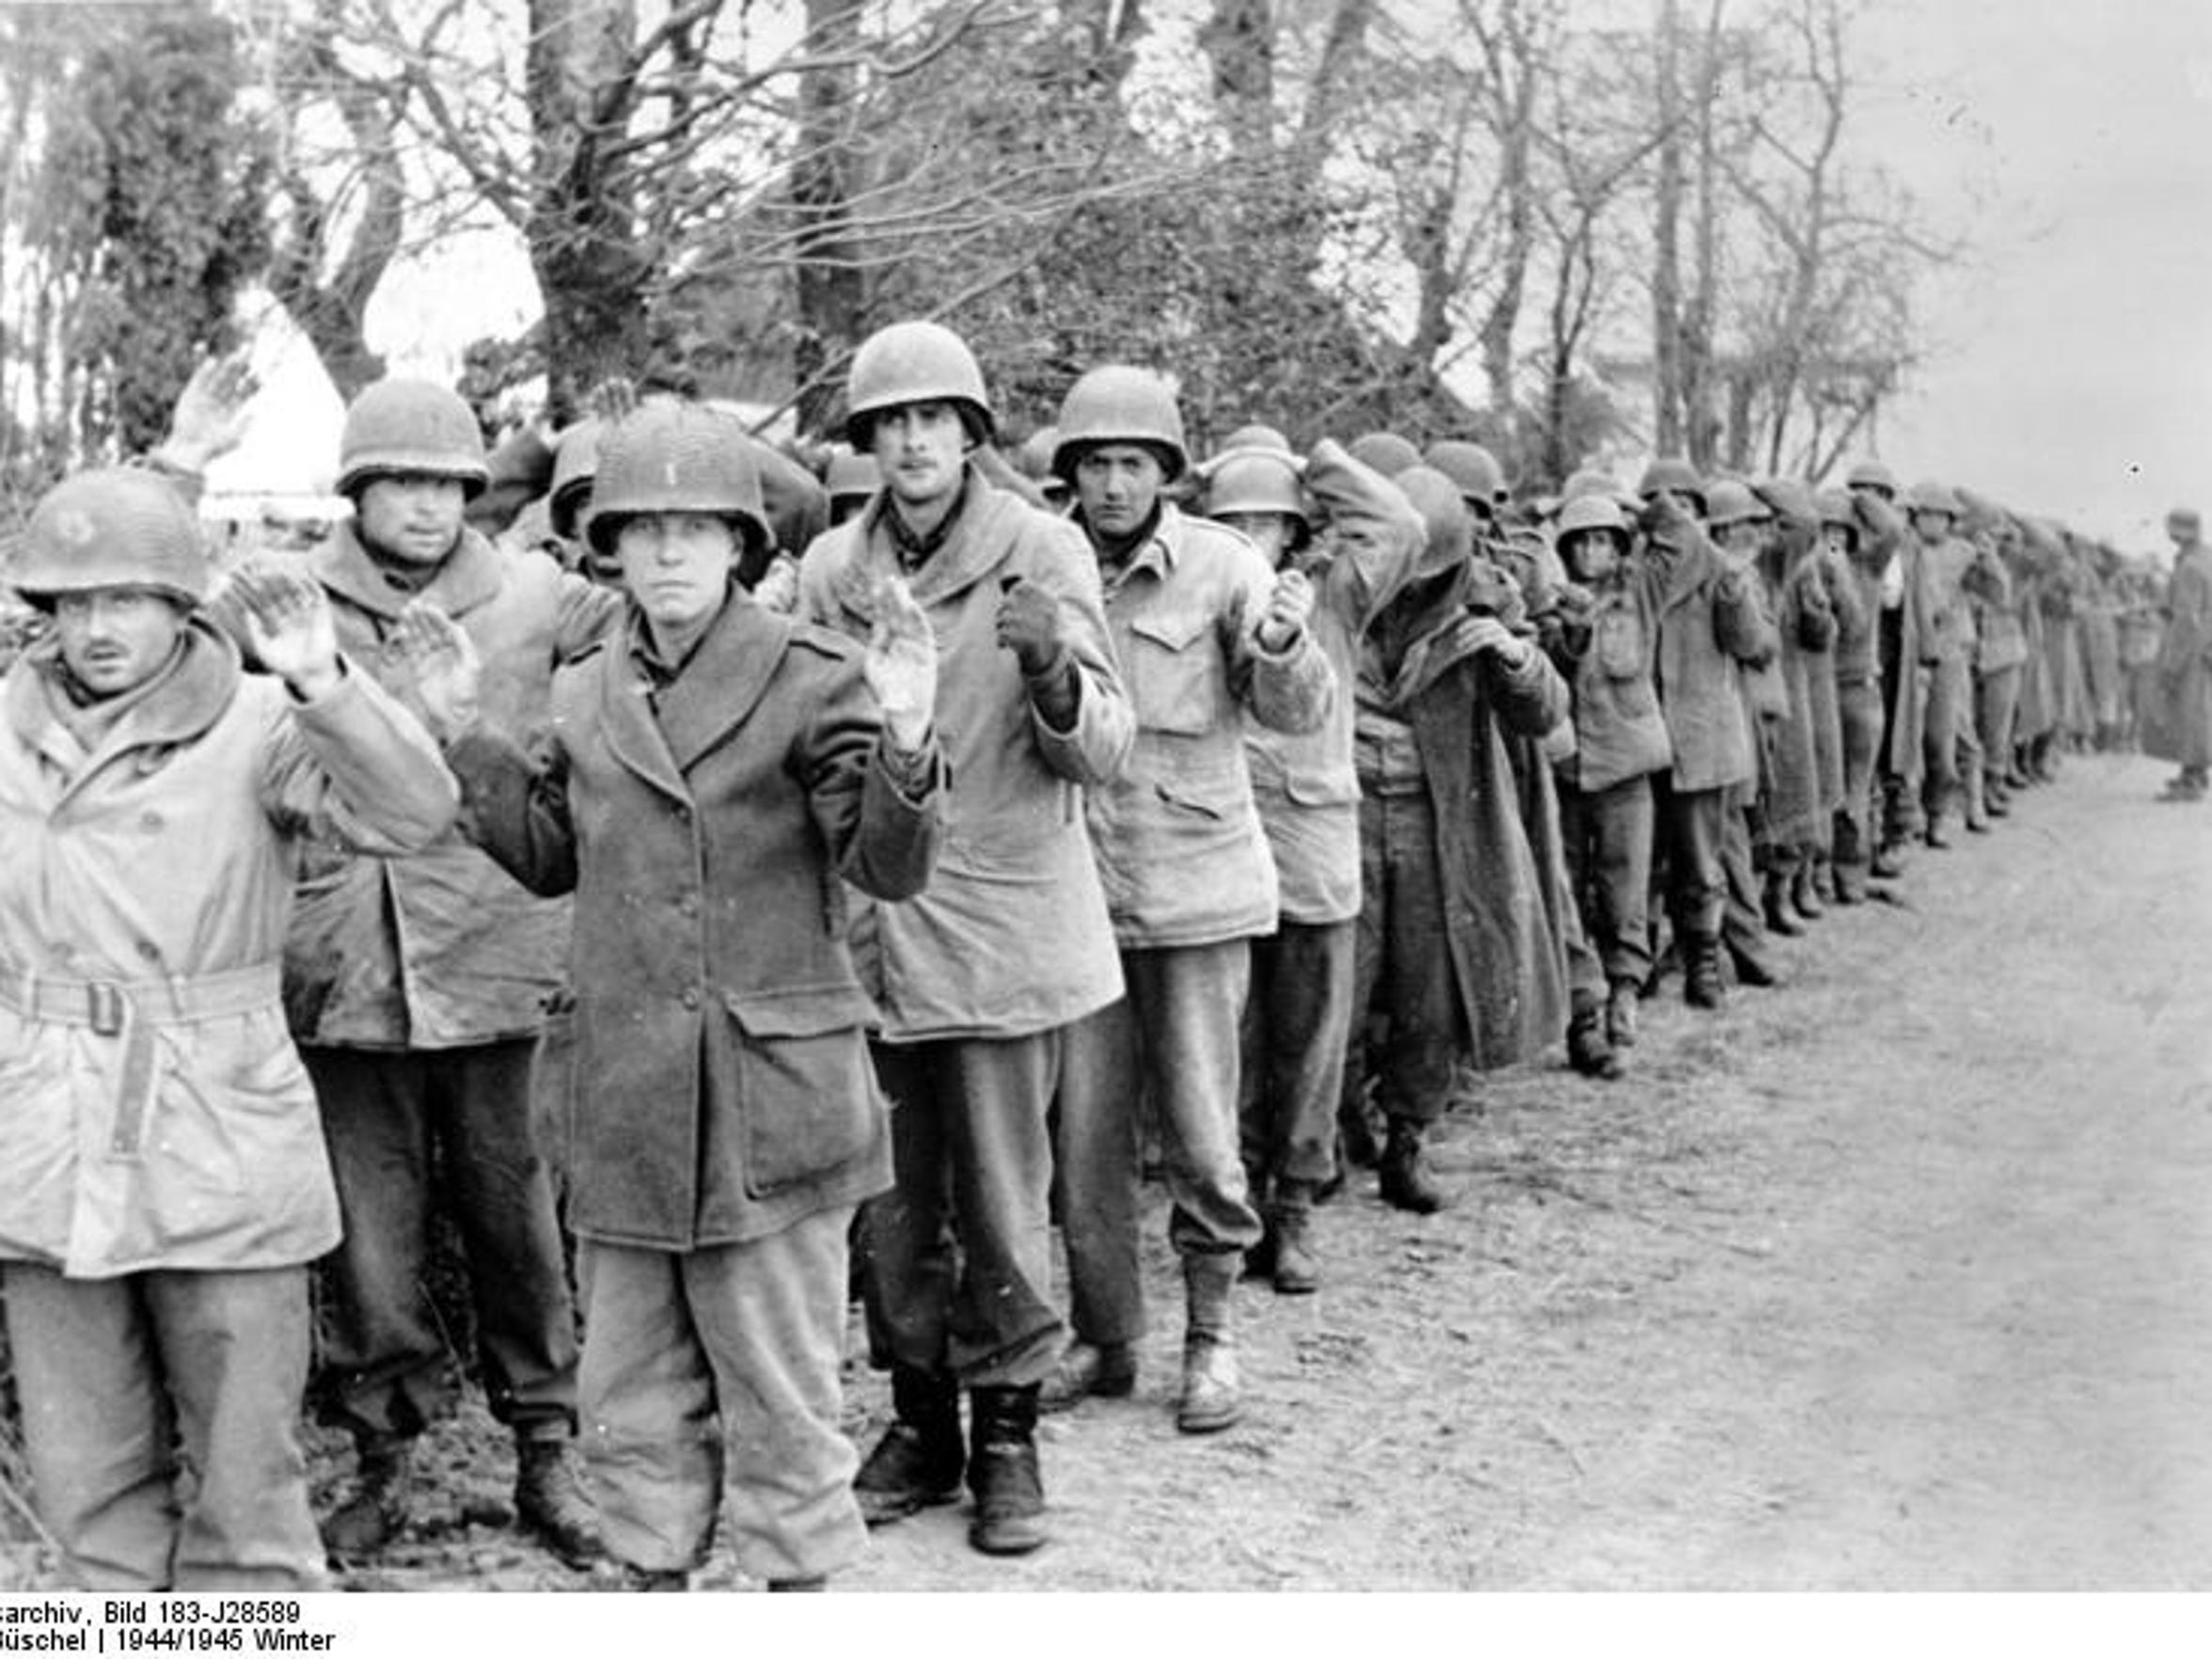 US POWs on 22 December 1944, captured during the Battle of the Bulge.  Keith Ginther of Choteau was among the POWs captured but is not necessarily in this picture.